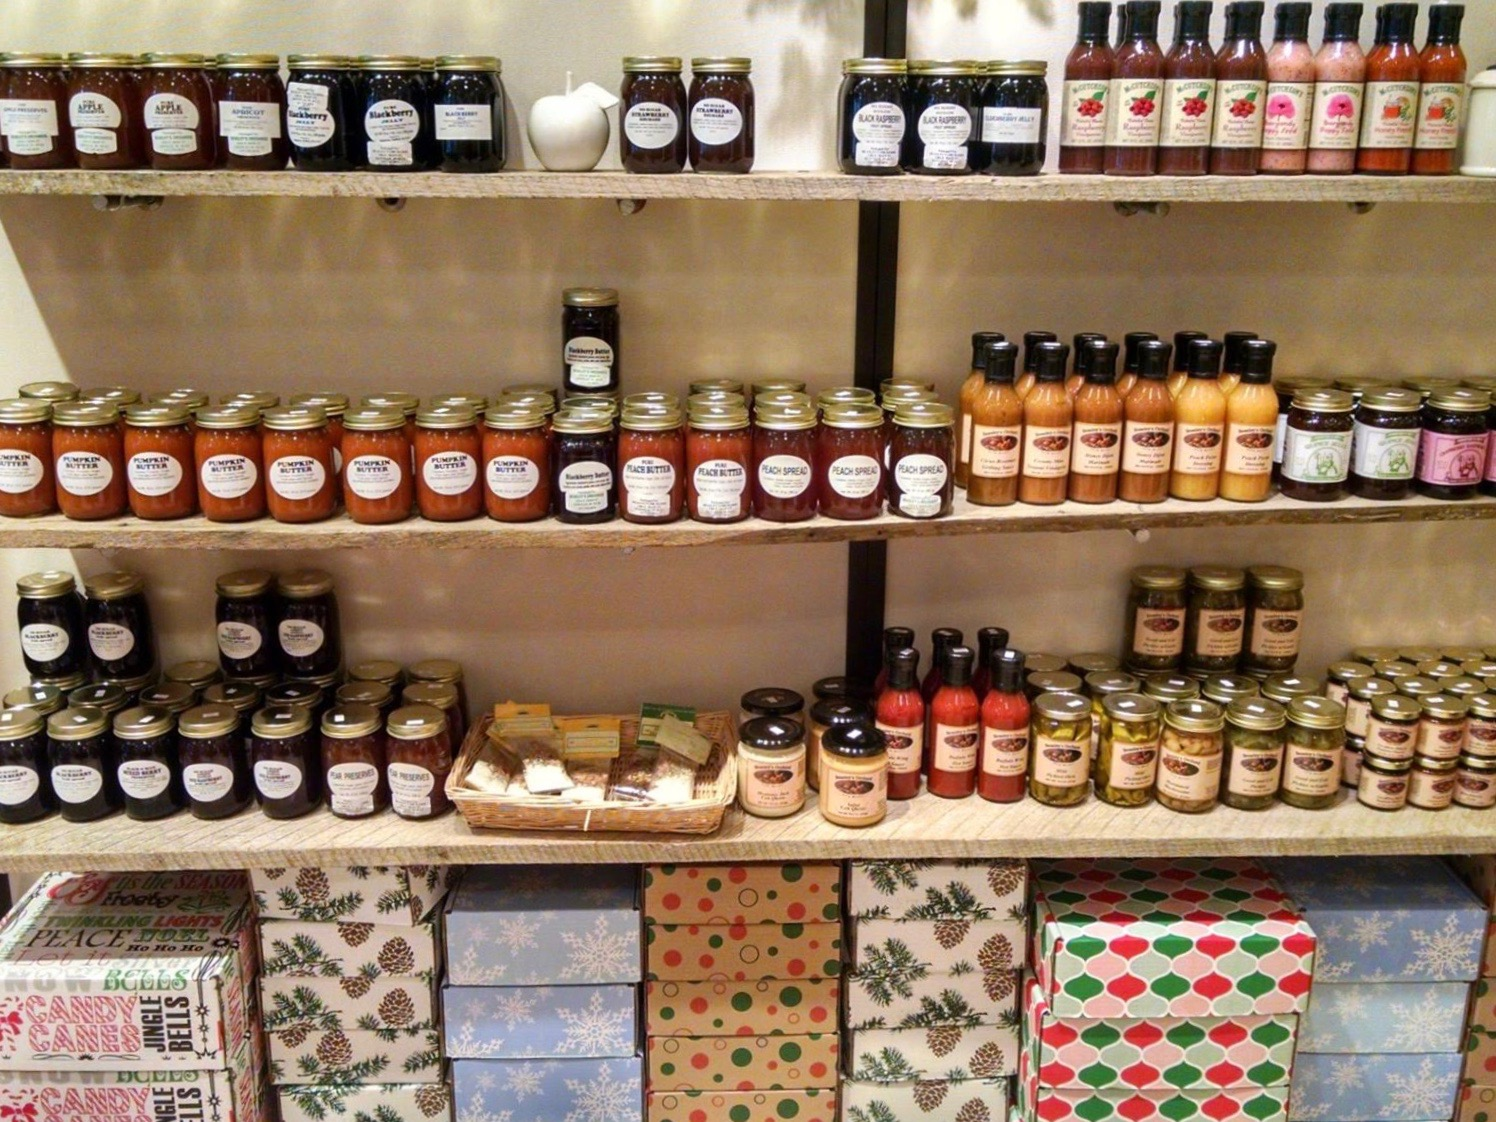 Pick a gift box, like the ones at the bottom of this photo, and fill it with all sorts of goodies for a unique, local Christmas gift.